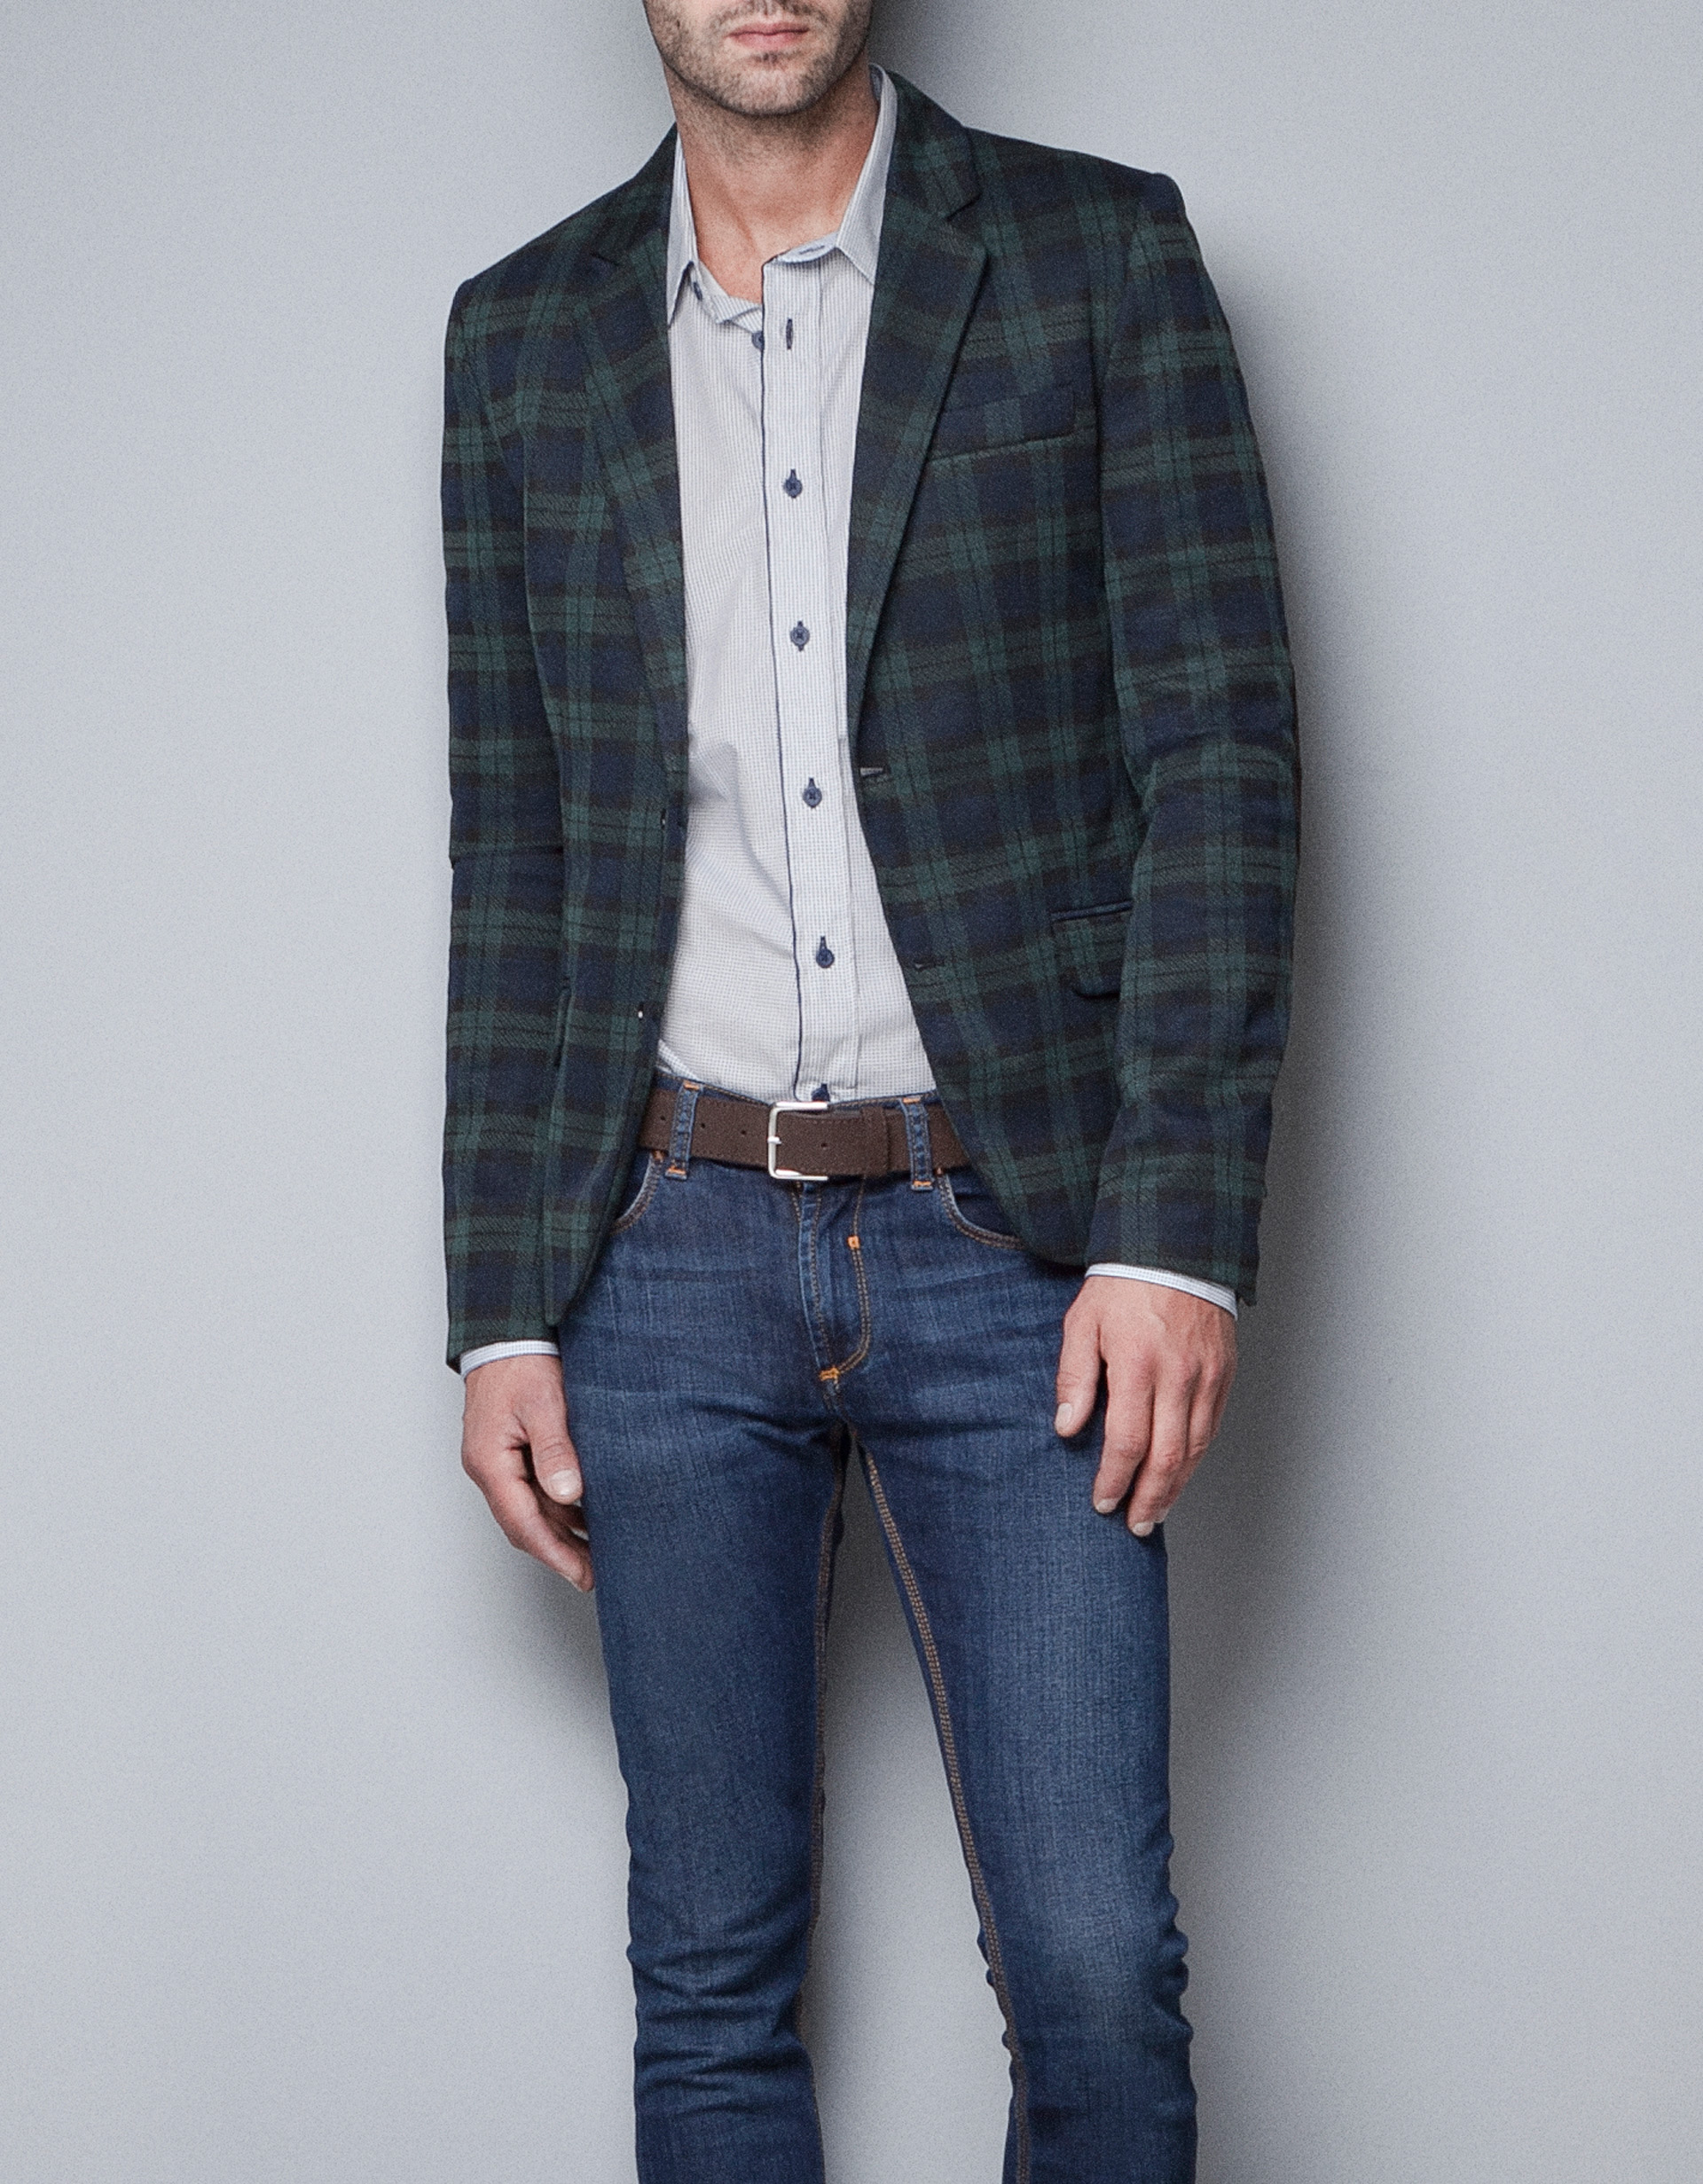 Find great deals on eBay for Mens Plaid Blazer in Blazers and Coats for Men. Shop with confidence.